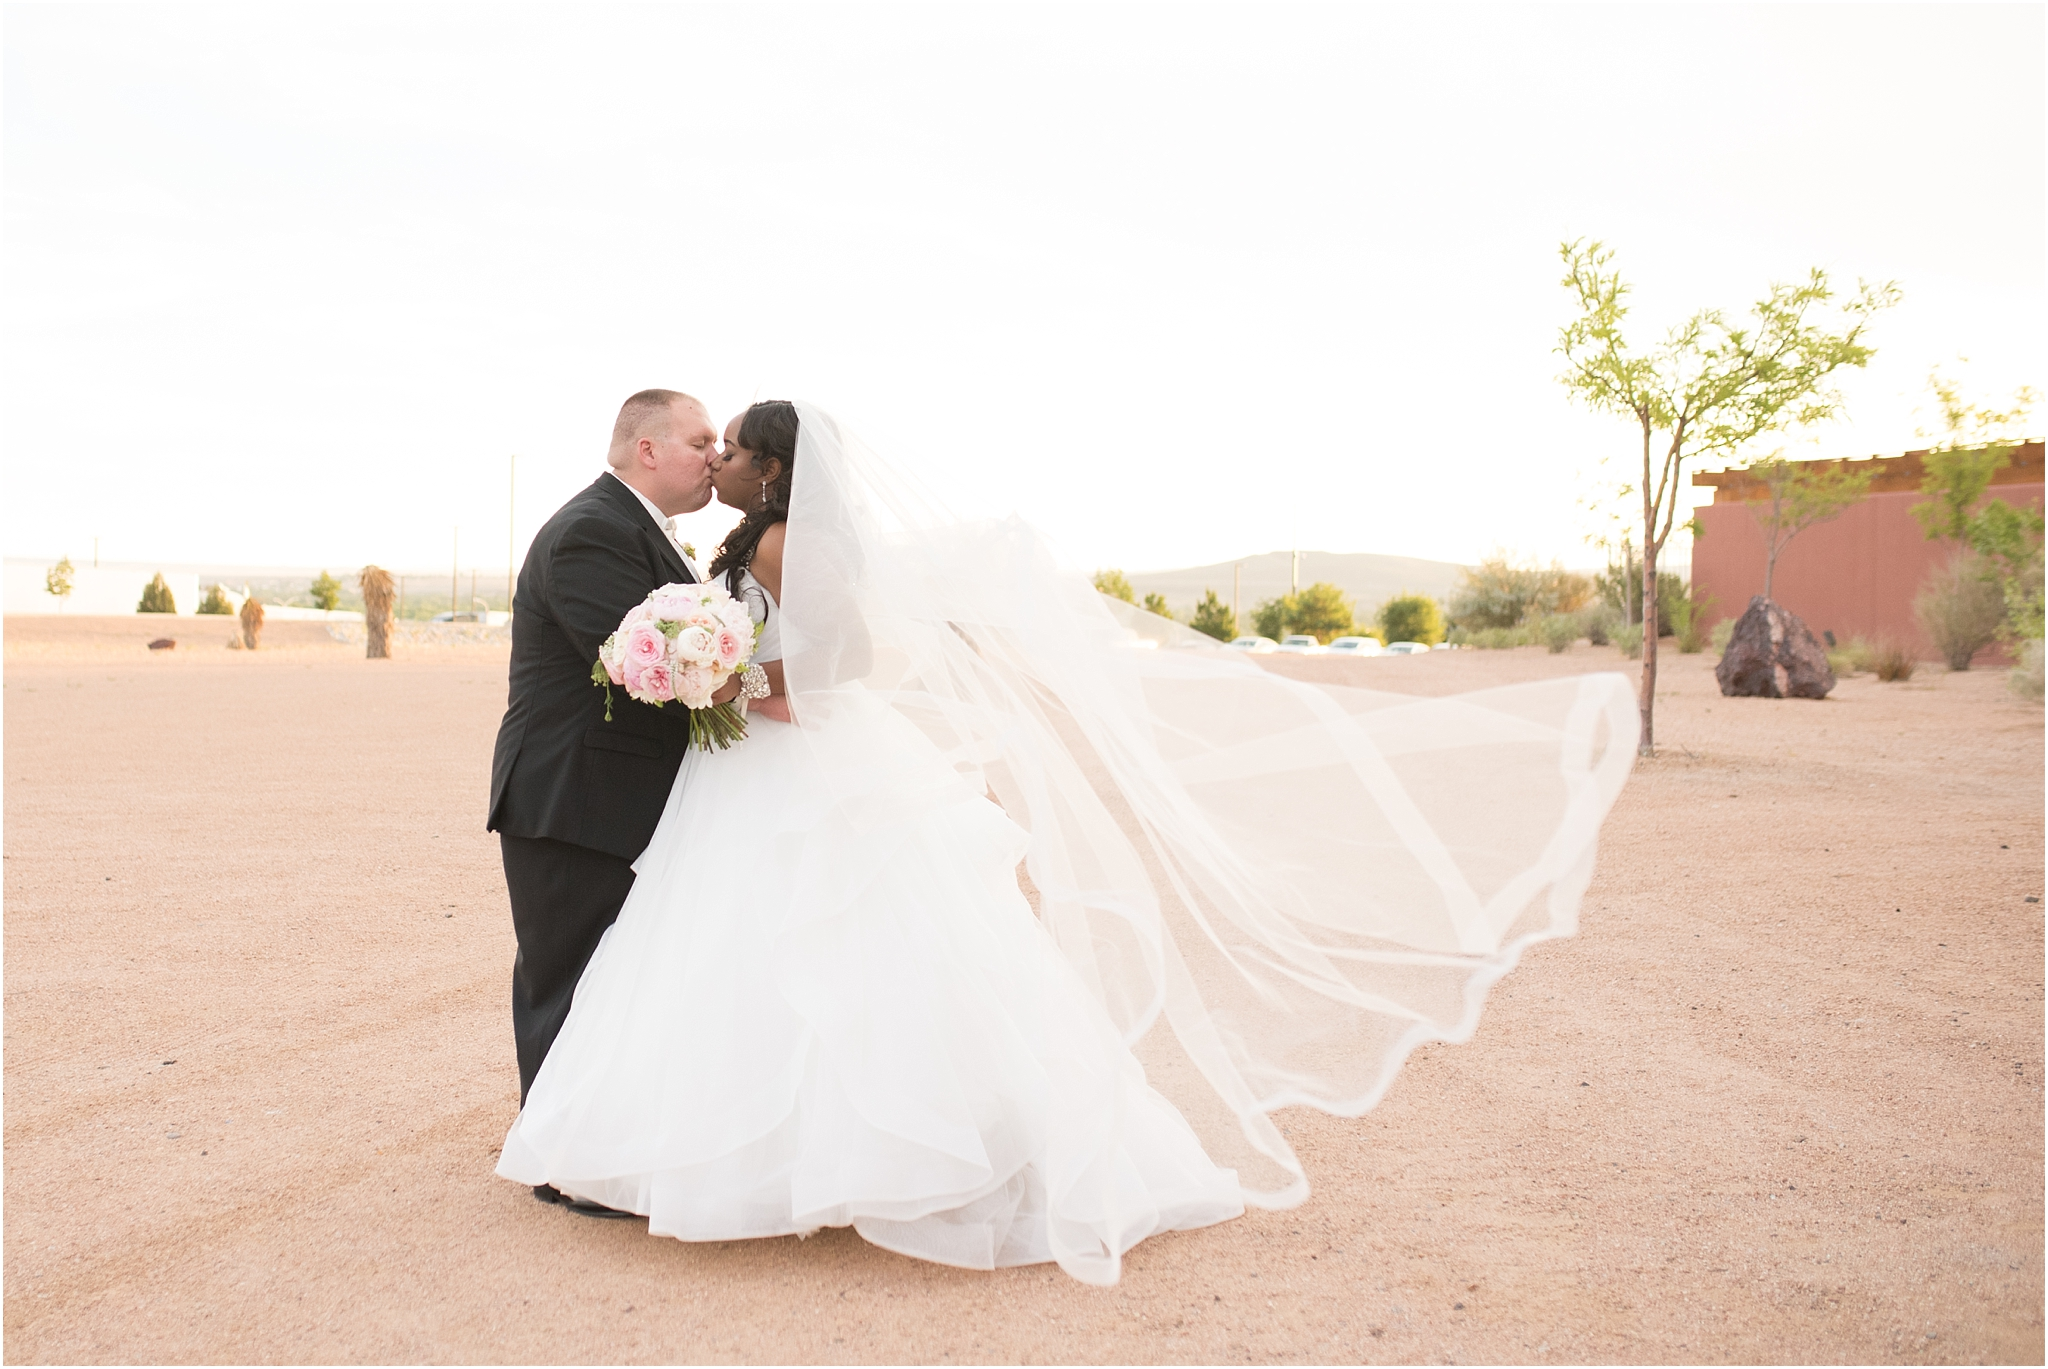 kayla kitts photography - new mexico wedding photographer - albuquerque botanic gardens - hotel albuquerque-casa de suenos_0237.jpg